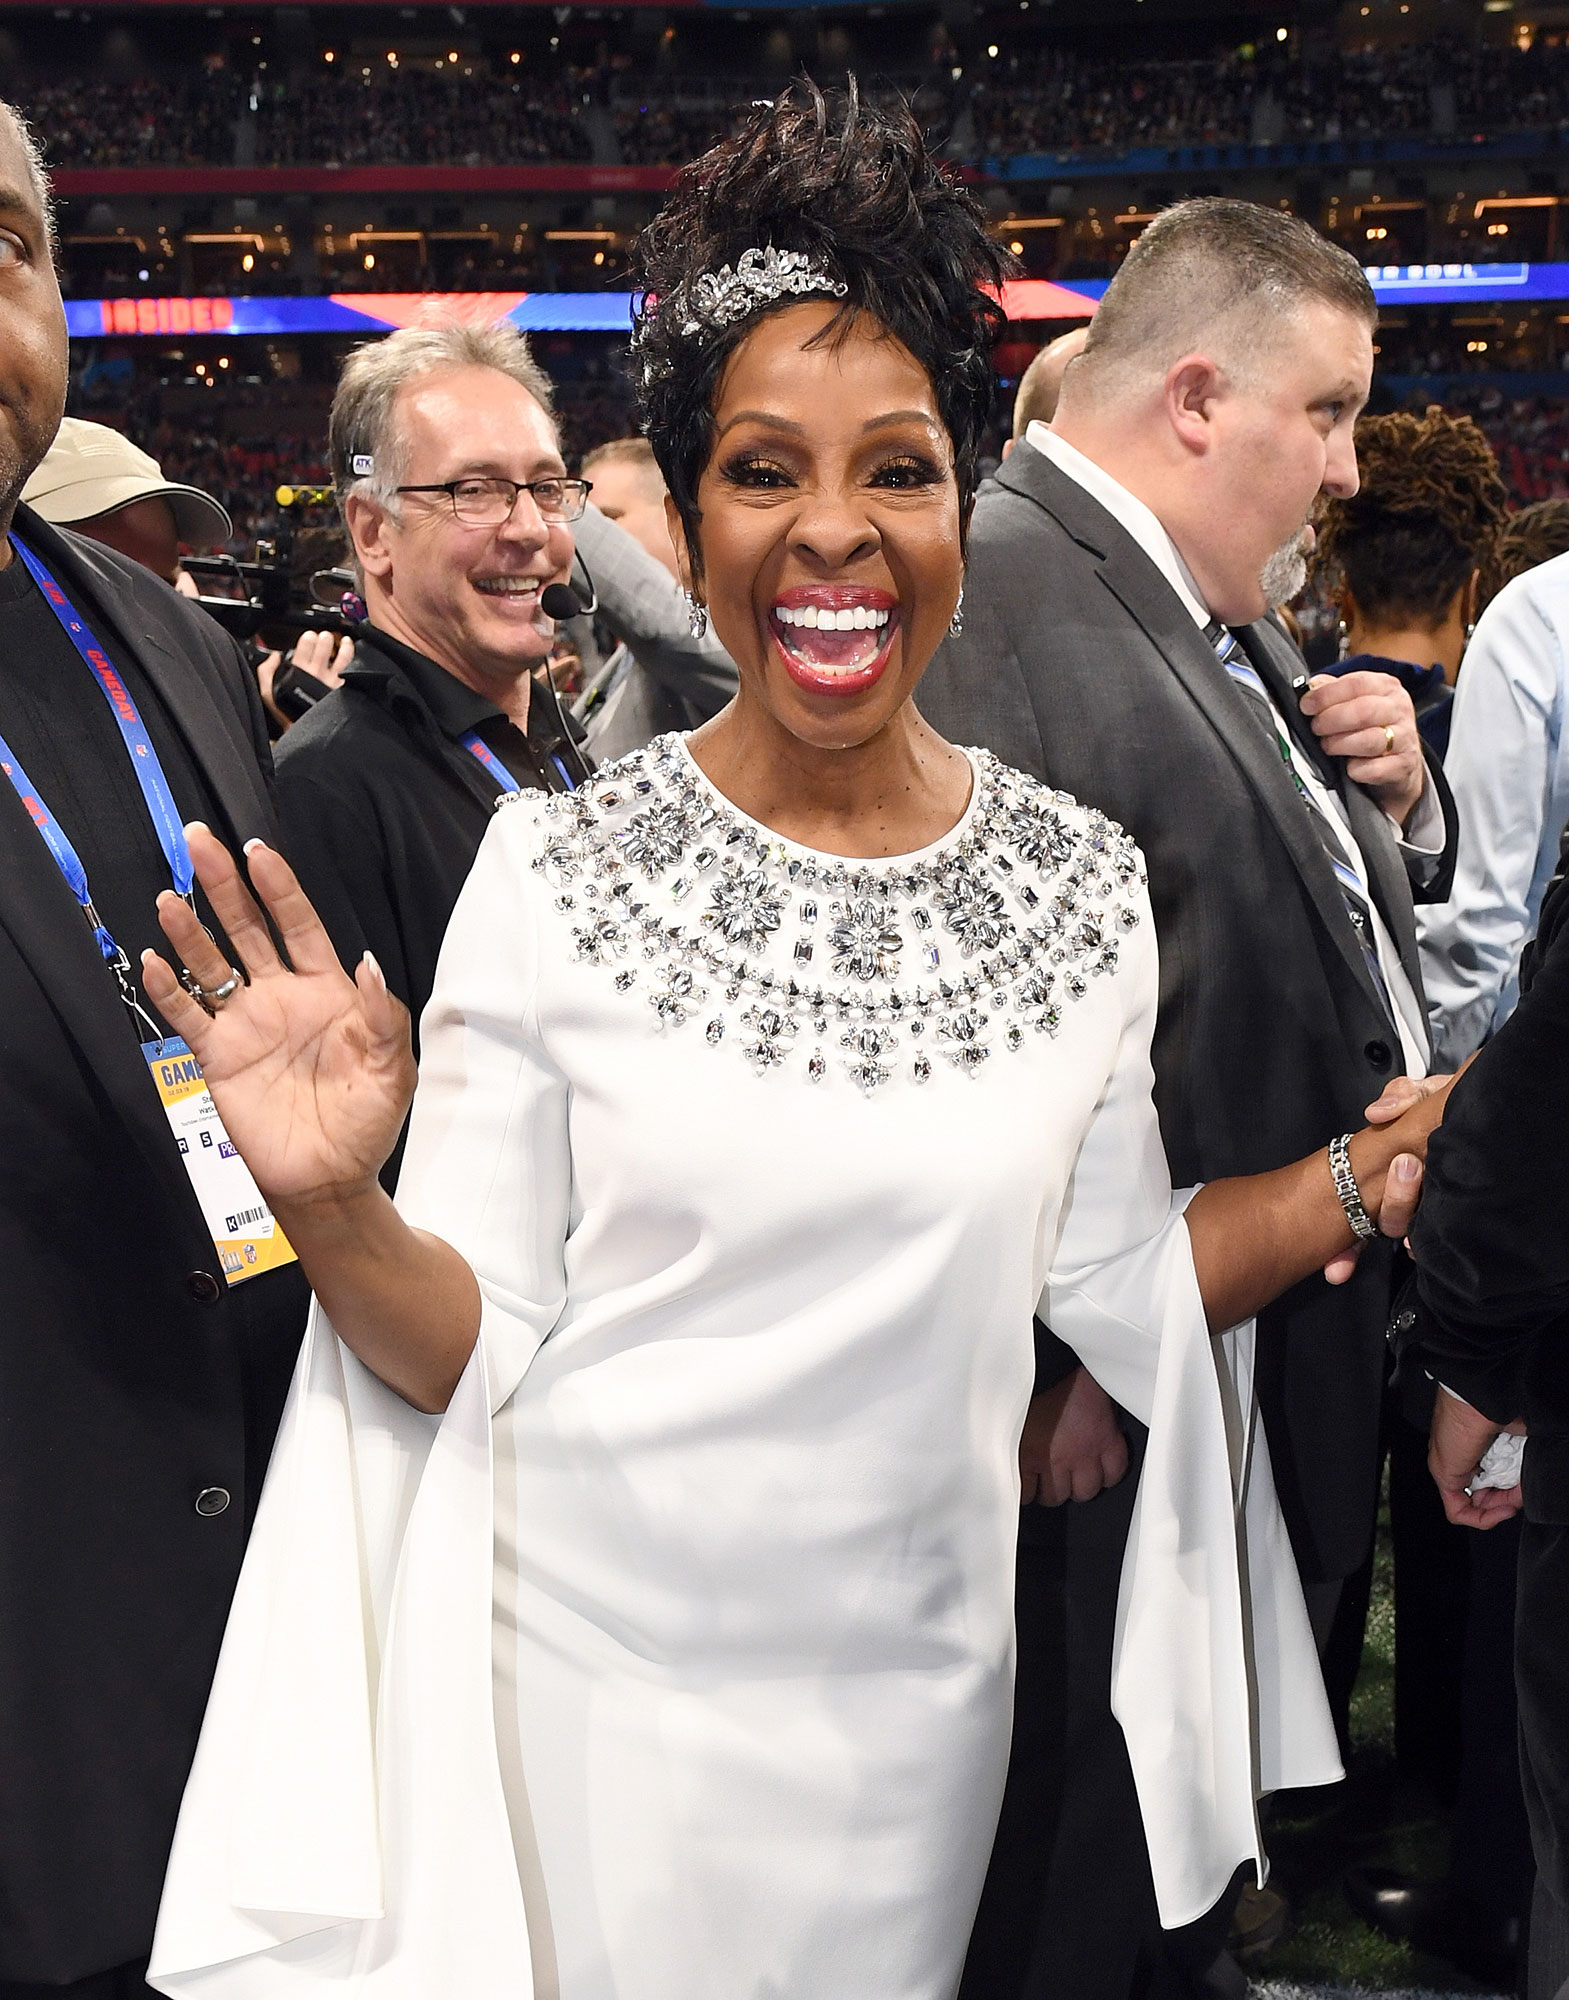 Gallery Super-Bowl-53-Knight - The Empress of Soul was all smiles before singing a soulful national anthem.